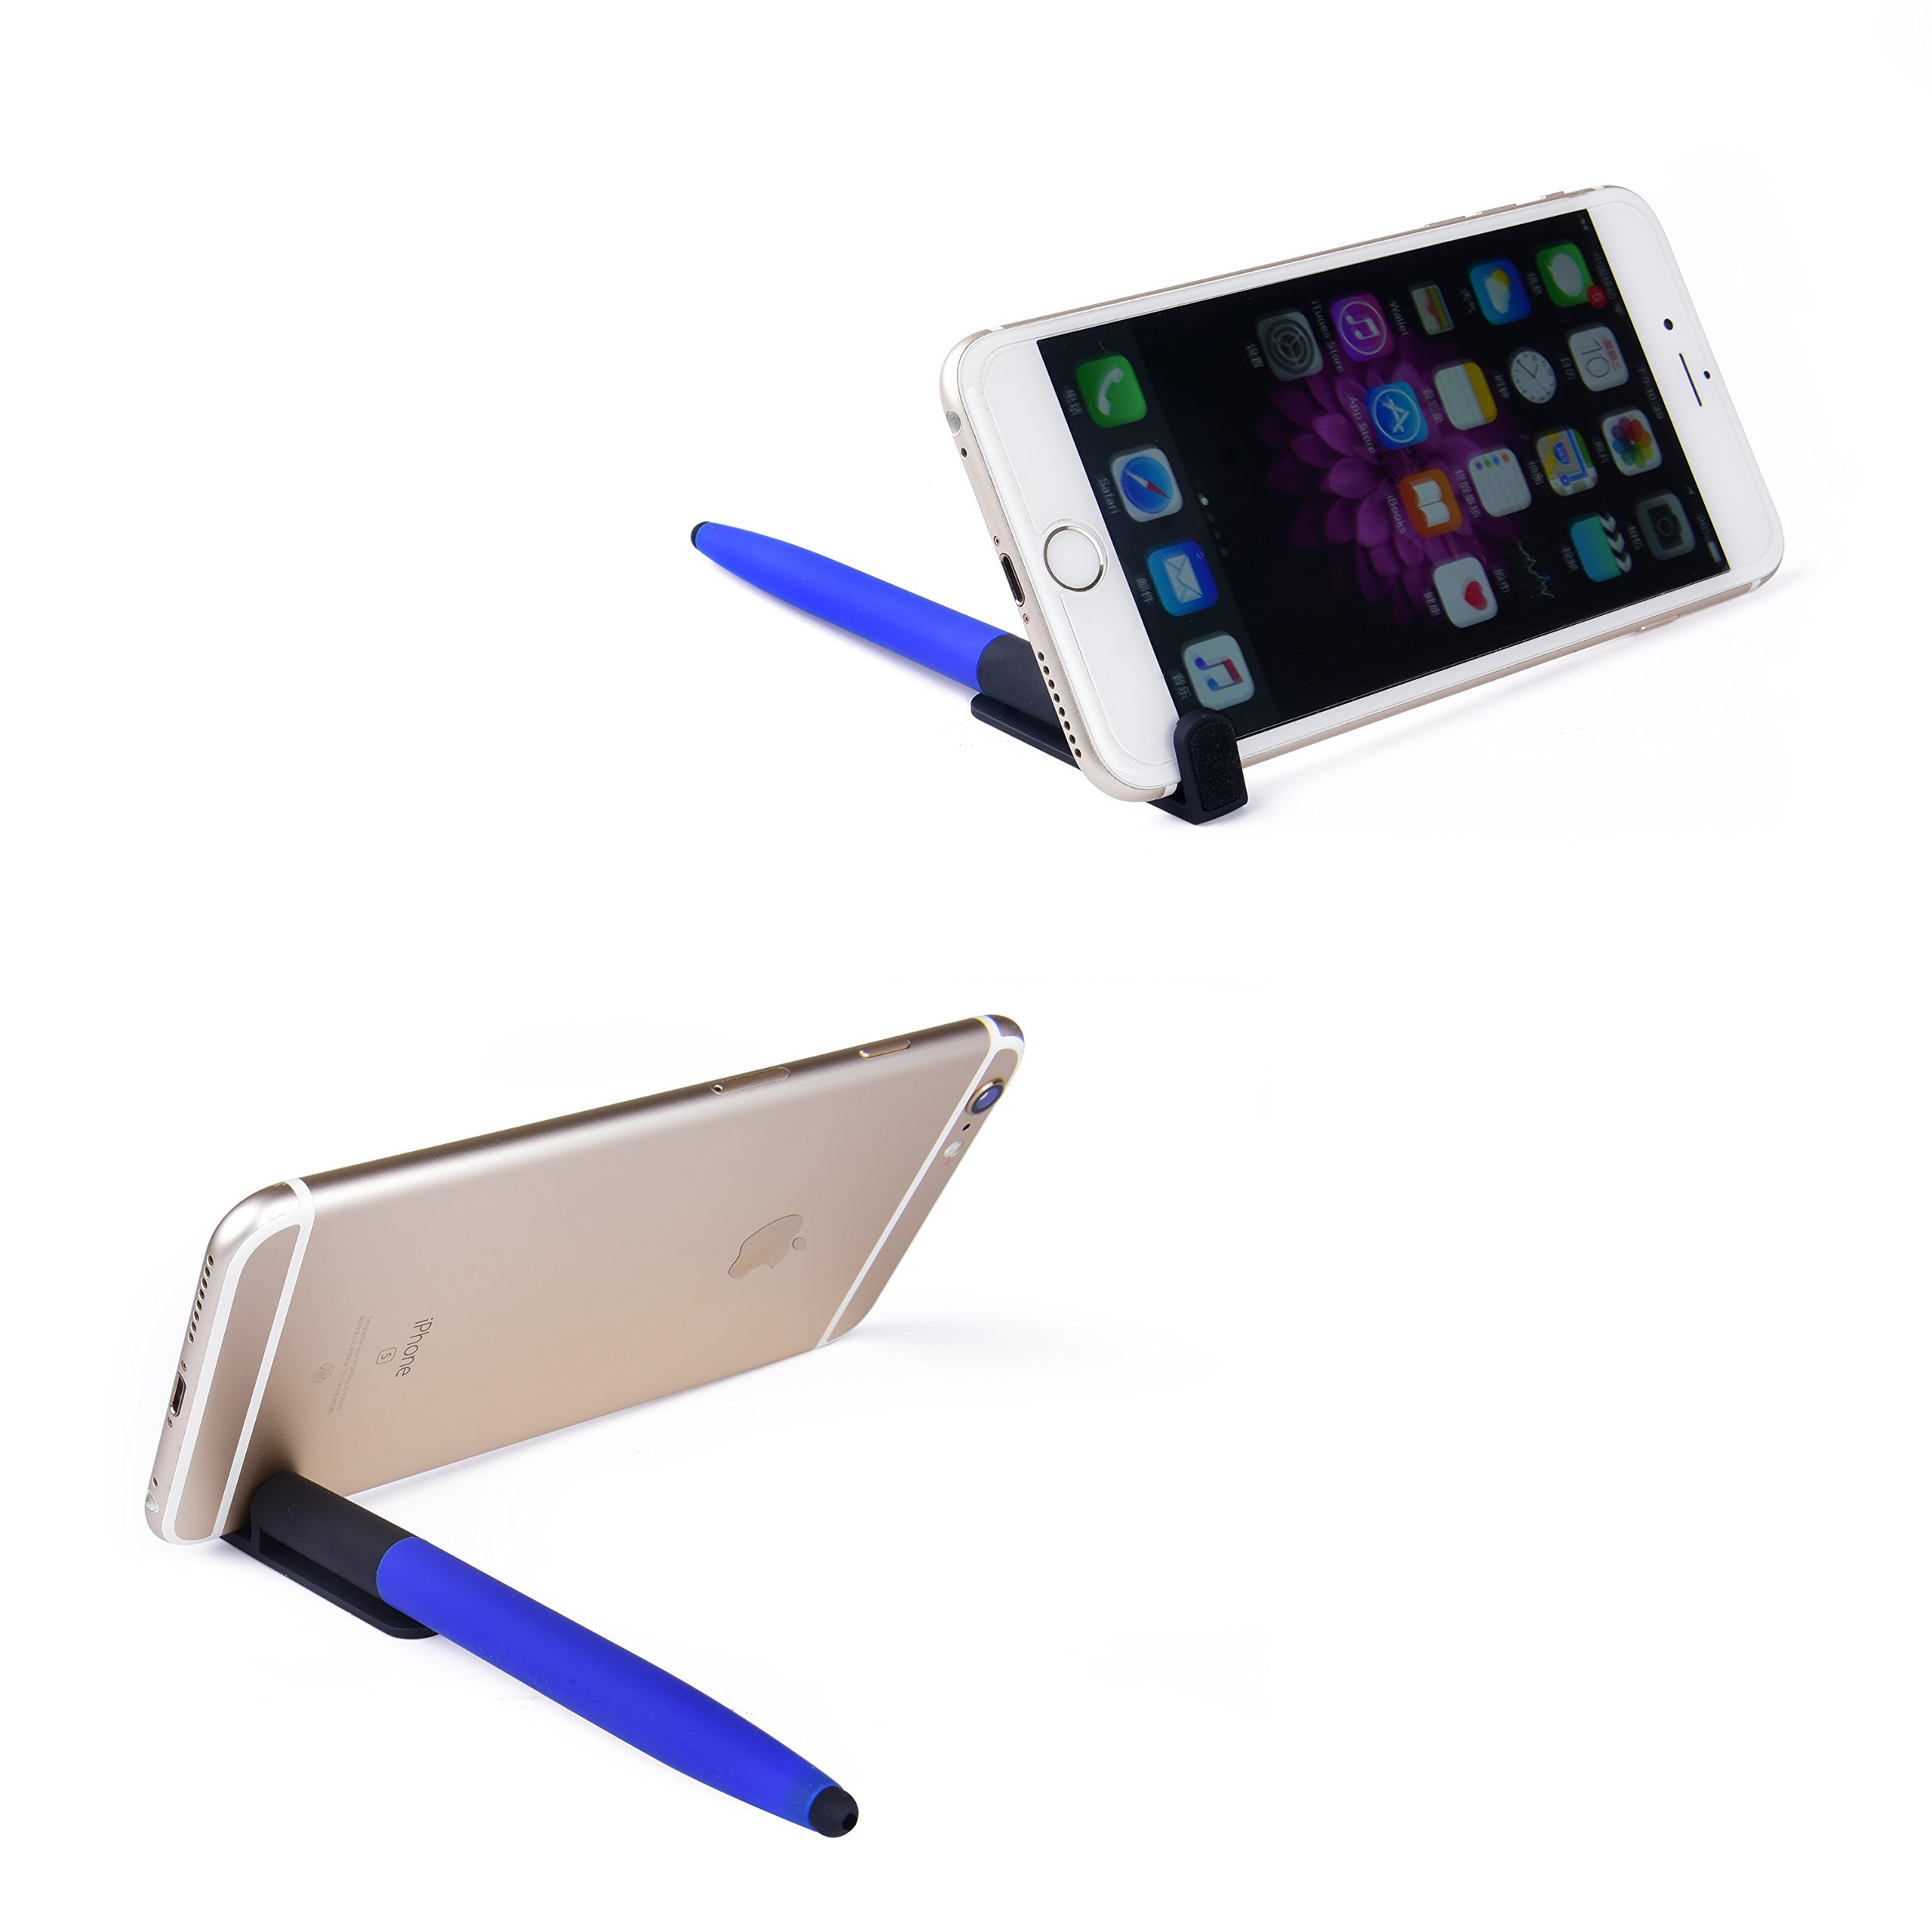 Alfinio S4 - Pocket i-Phone, iPad Video Stand, Stylus, Pen & Screen Cleaner [Universal 2pk]-Watch movies, recipes, cartoon in-flight restaurant kitchen College, FaceTime Facebook Live during Travel